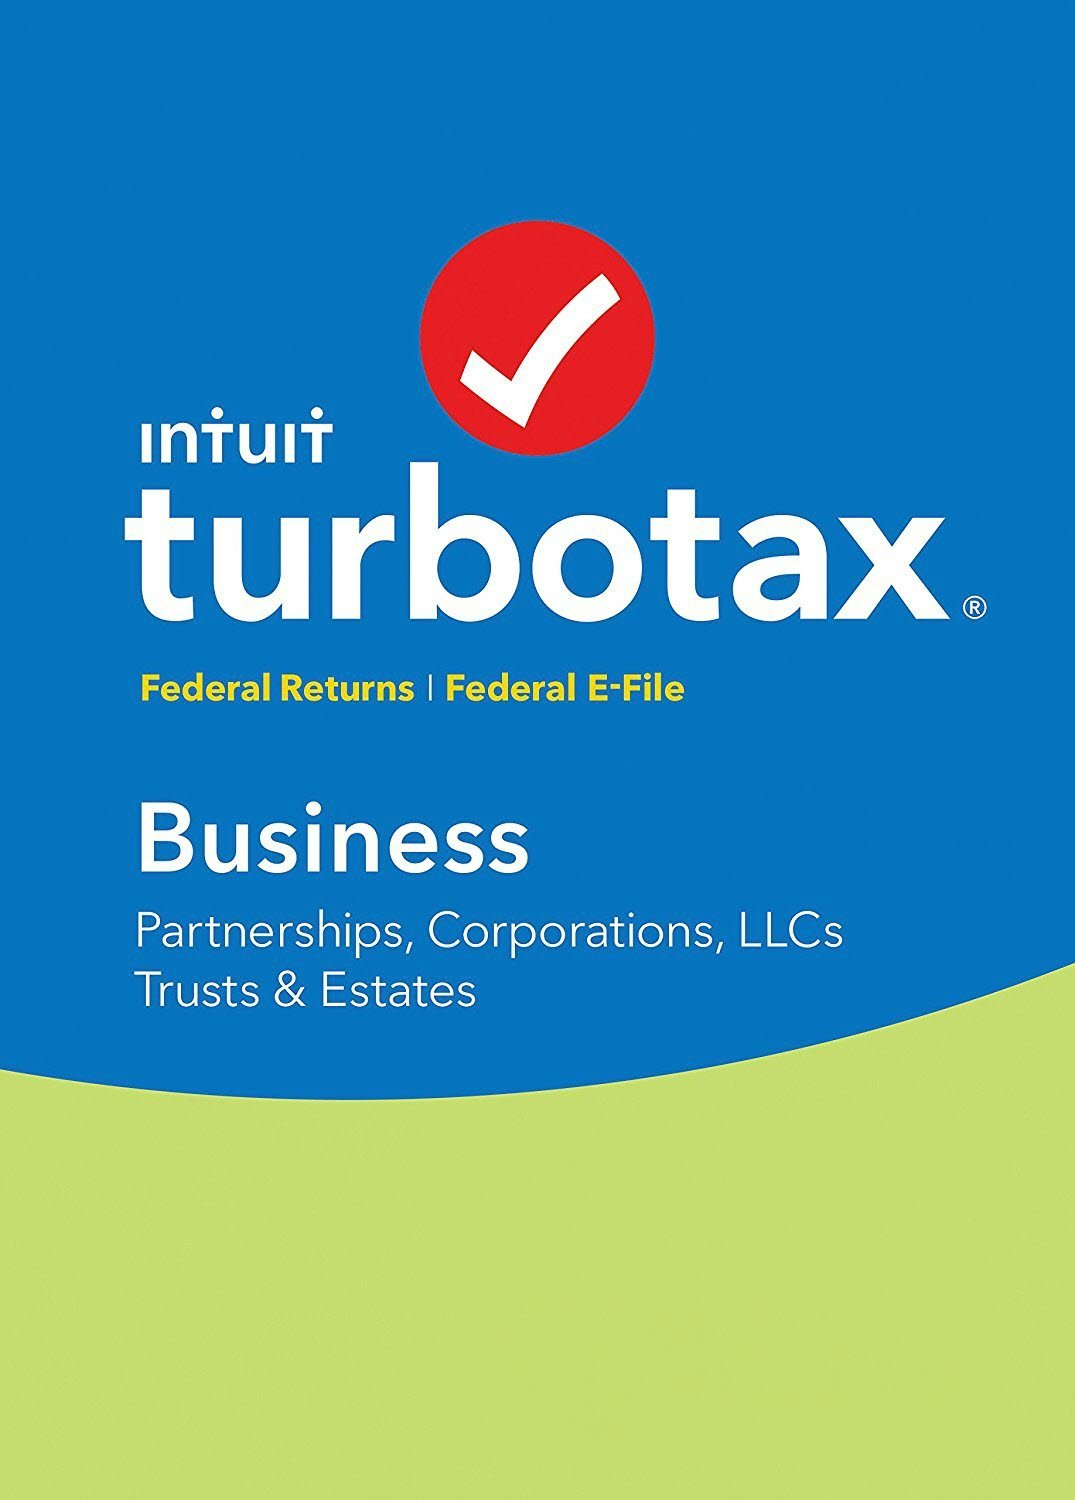 Intuit TurboTax Business 2017 Turbo Tax with Federal Efile for Corporation Partnership LLC Trust Estate